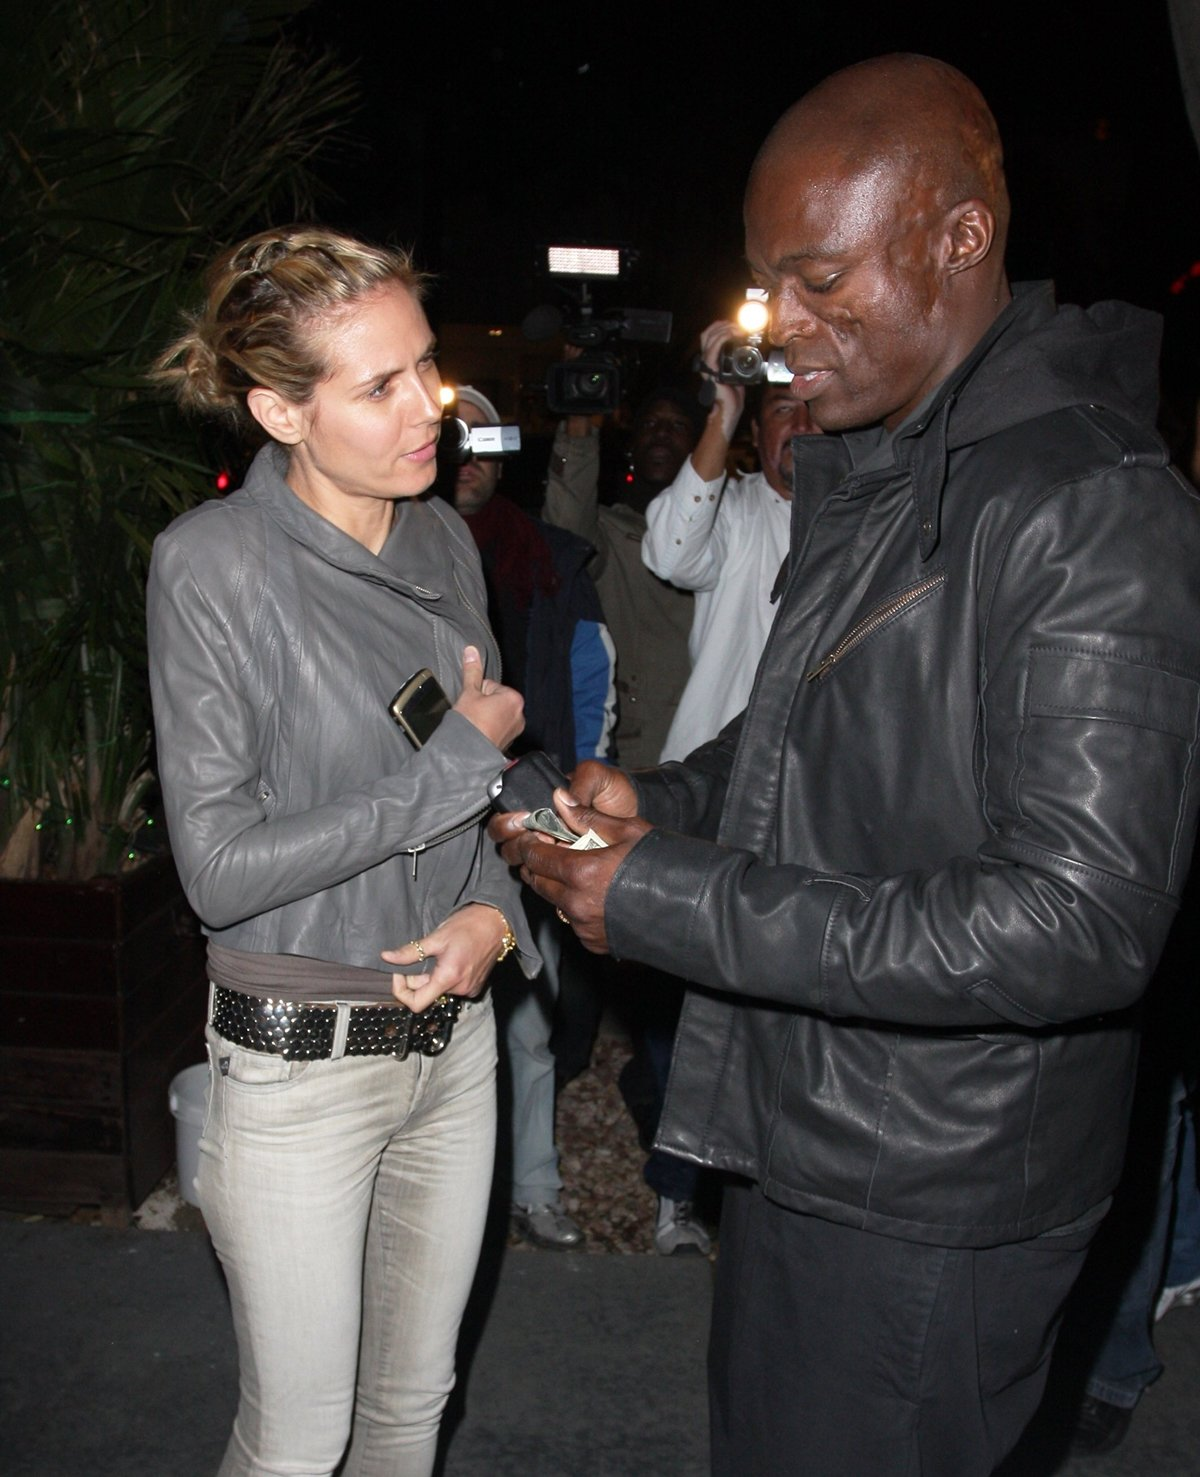 Heidi Klum and Seal started dating after meeting in a hotel lobby in New York City in 2004